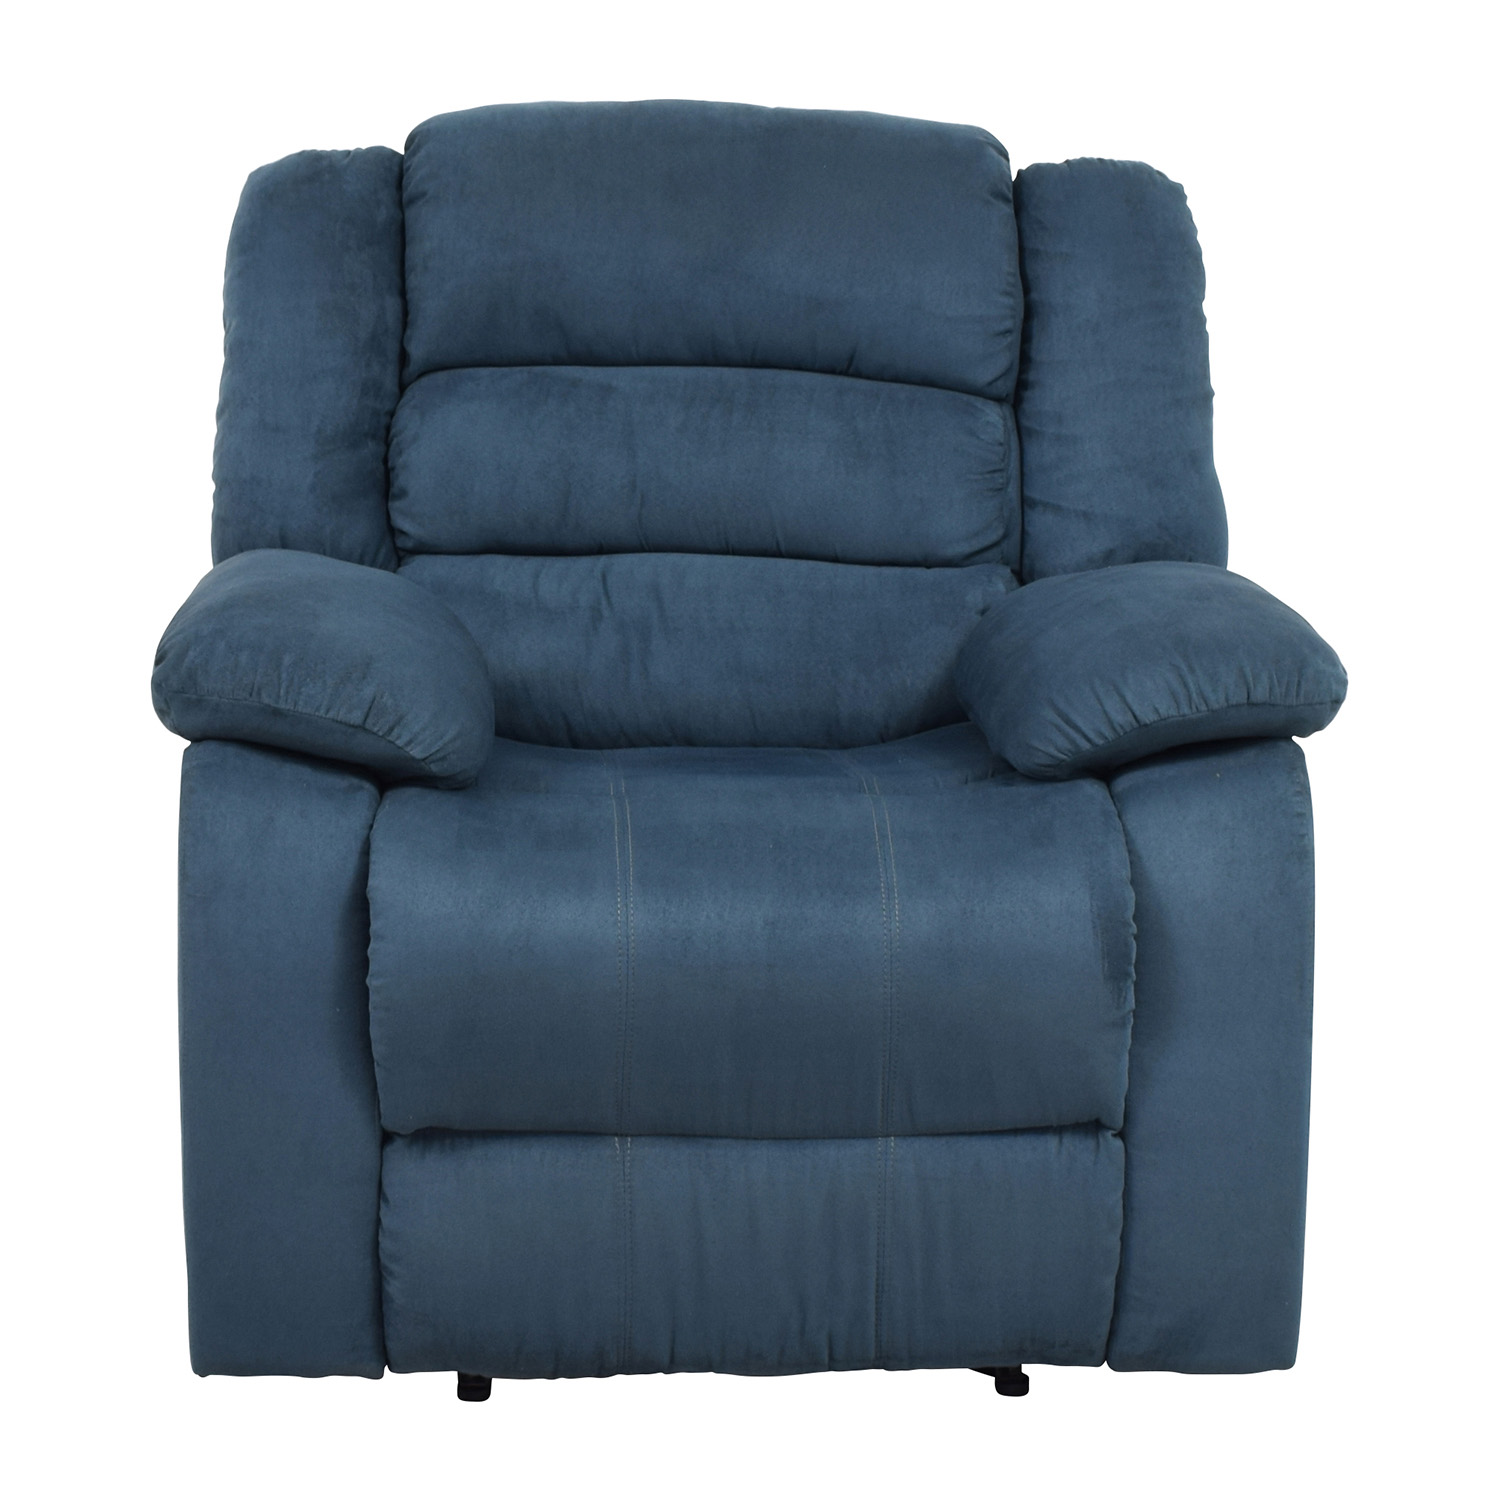 Nathaniel Home Express Addison Contemporary Recliner / Chairs